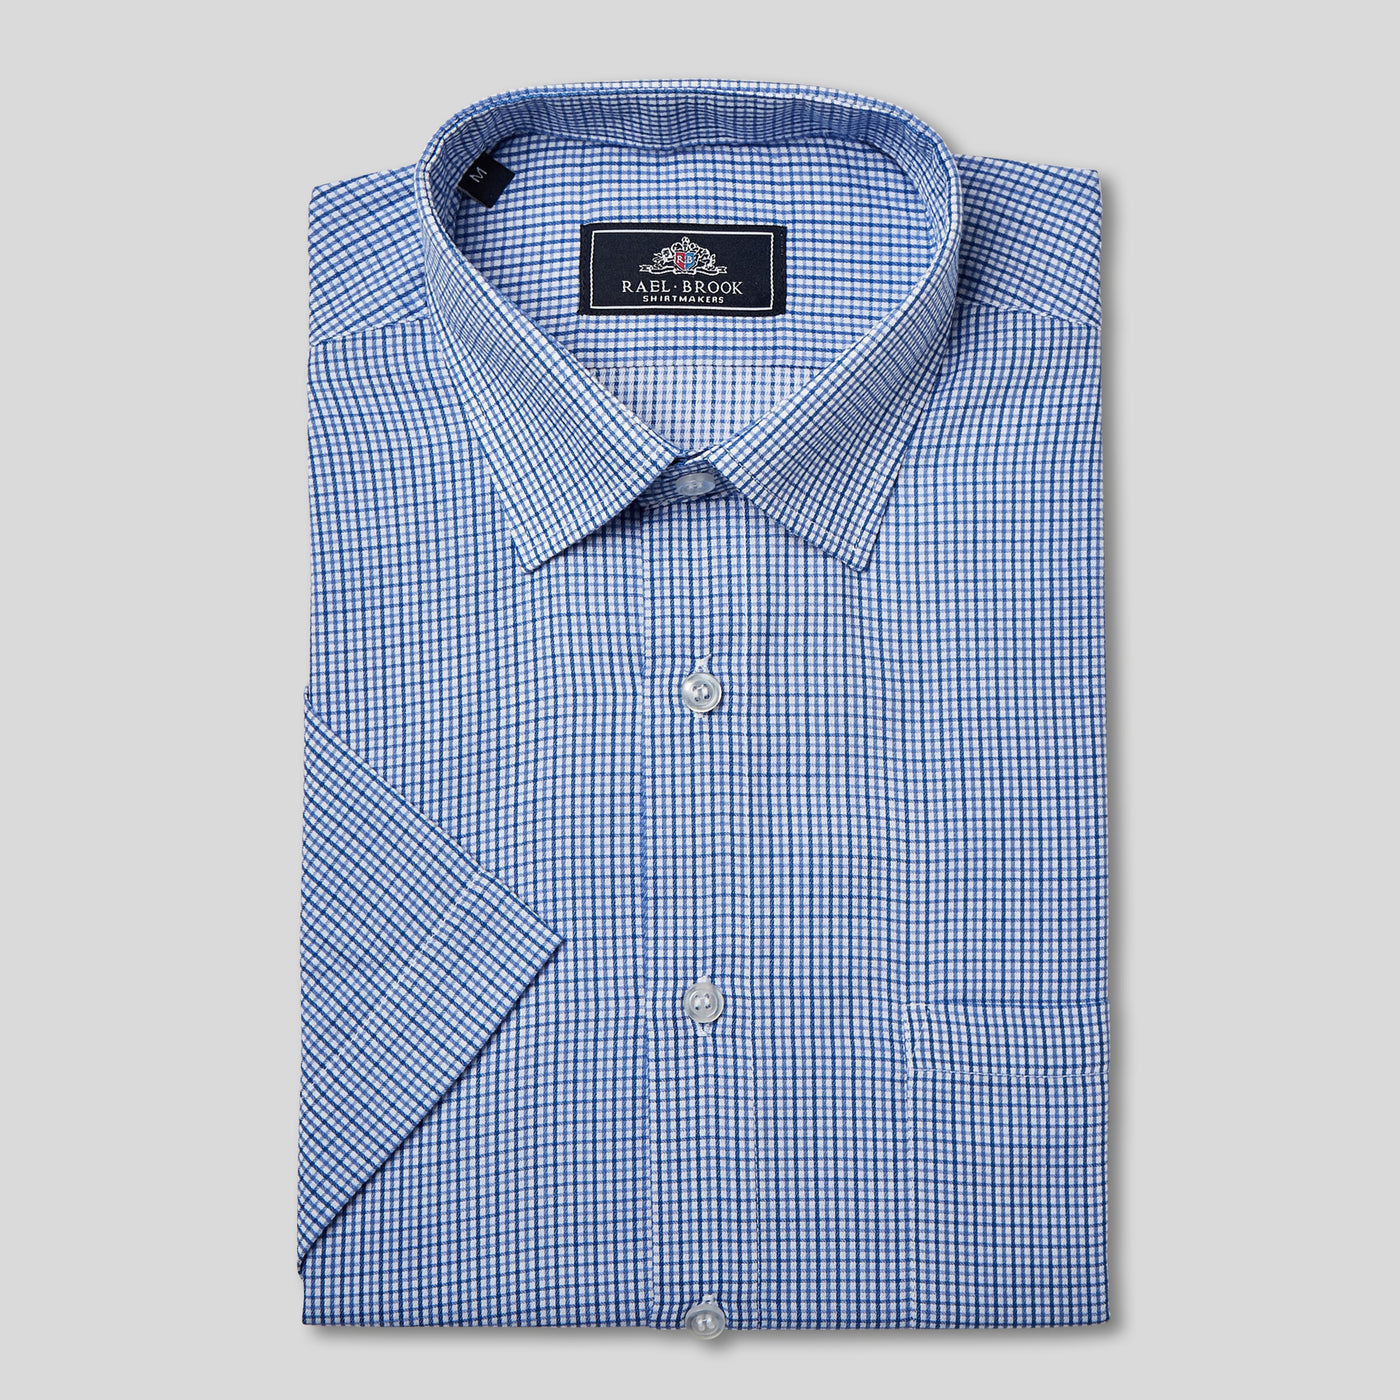 Rael Brook Classic Fit Short Sleeve Blue Micro Check Shirt